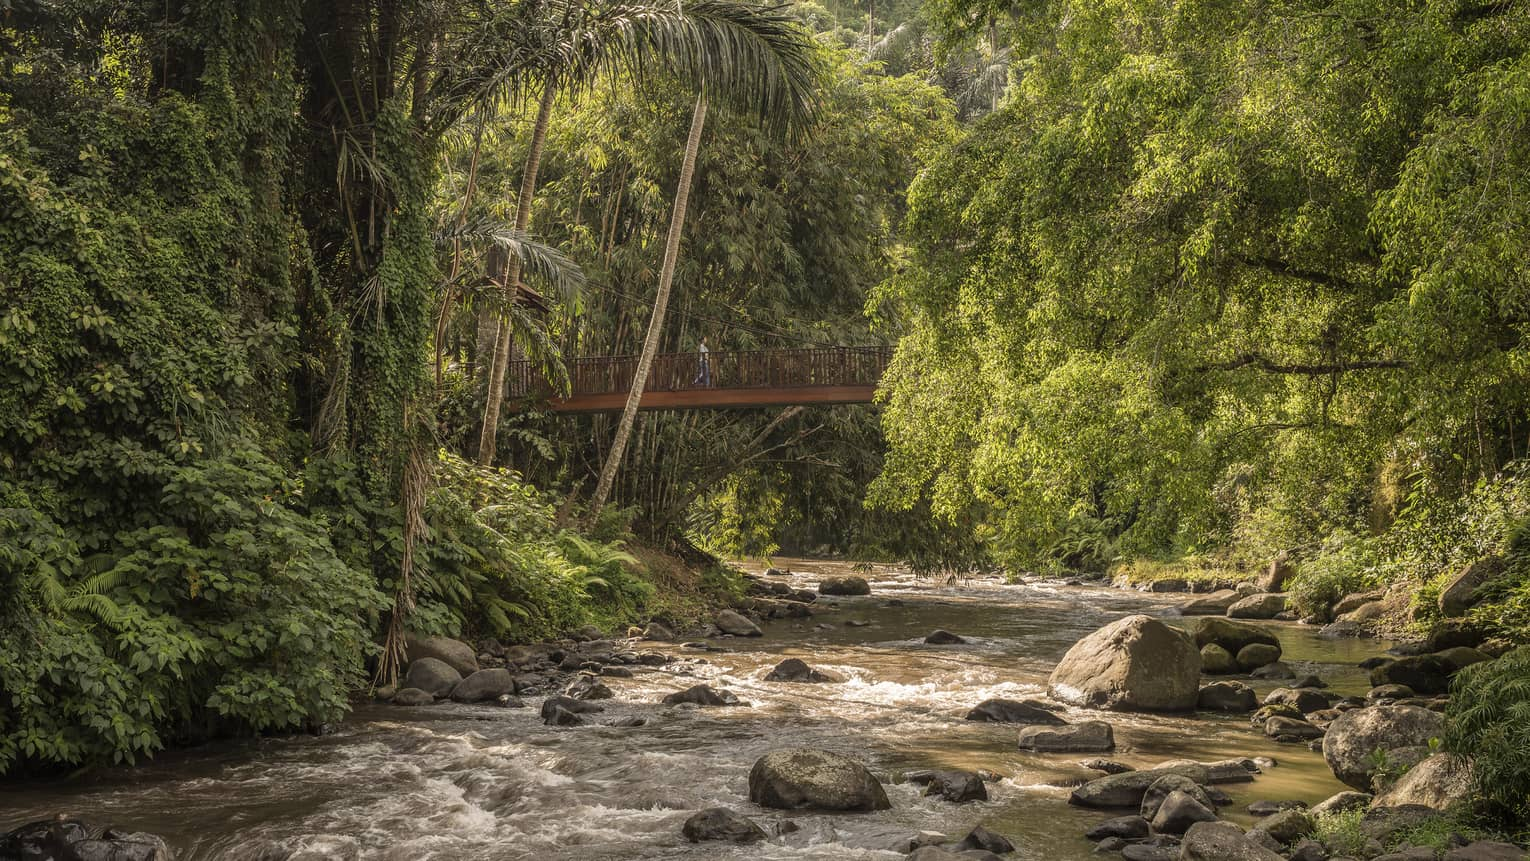 Sayan Bridge extends over a roaring river that flows around rocks and is surrounded by lush vegetation